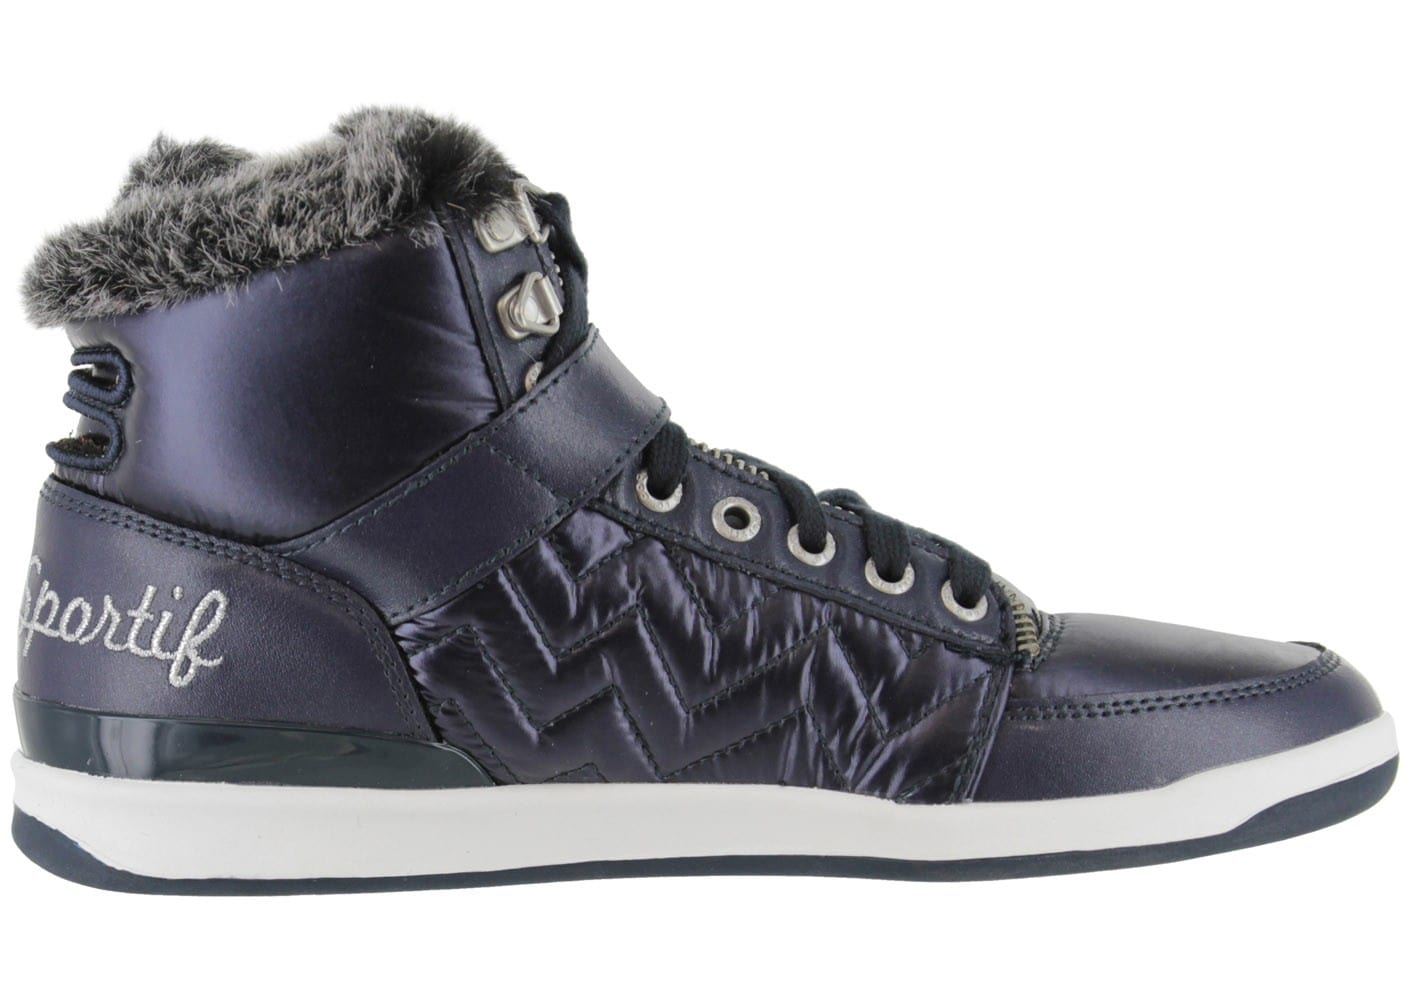 le coq sportif diamond bleu marine chaussures chaussures chausport. Black Bedroom Furniture Sets. Home Design Ideas